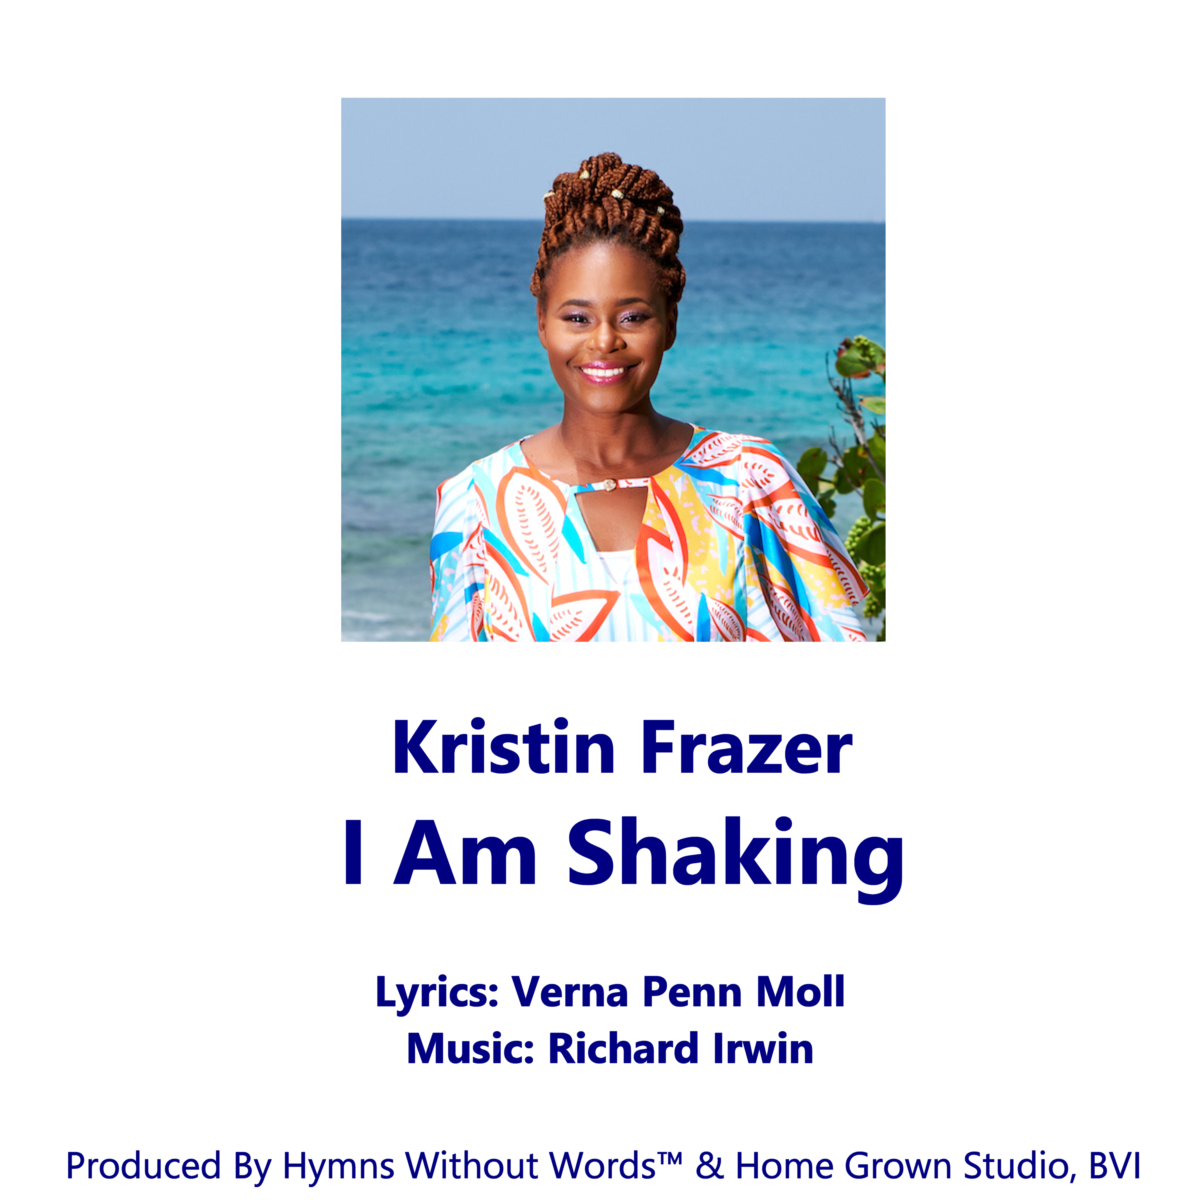 Kristin Frazer - I Am Shaking